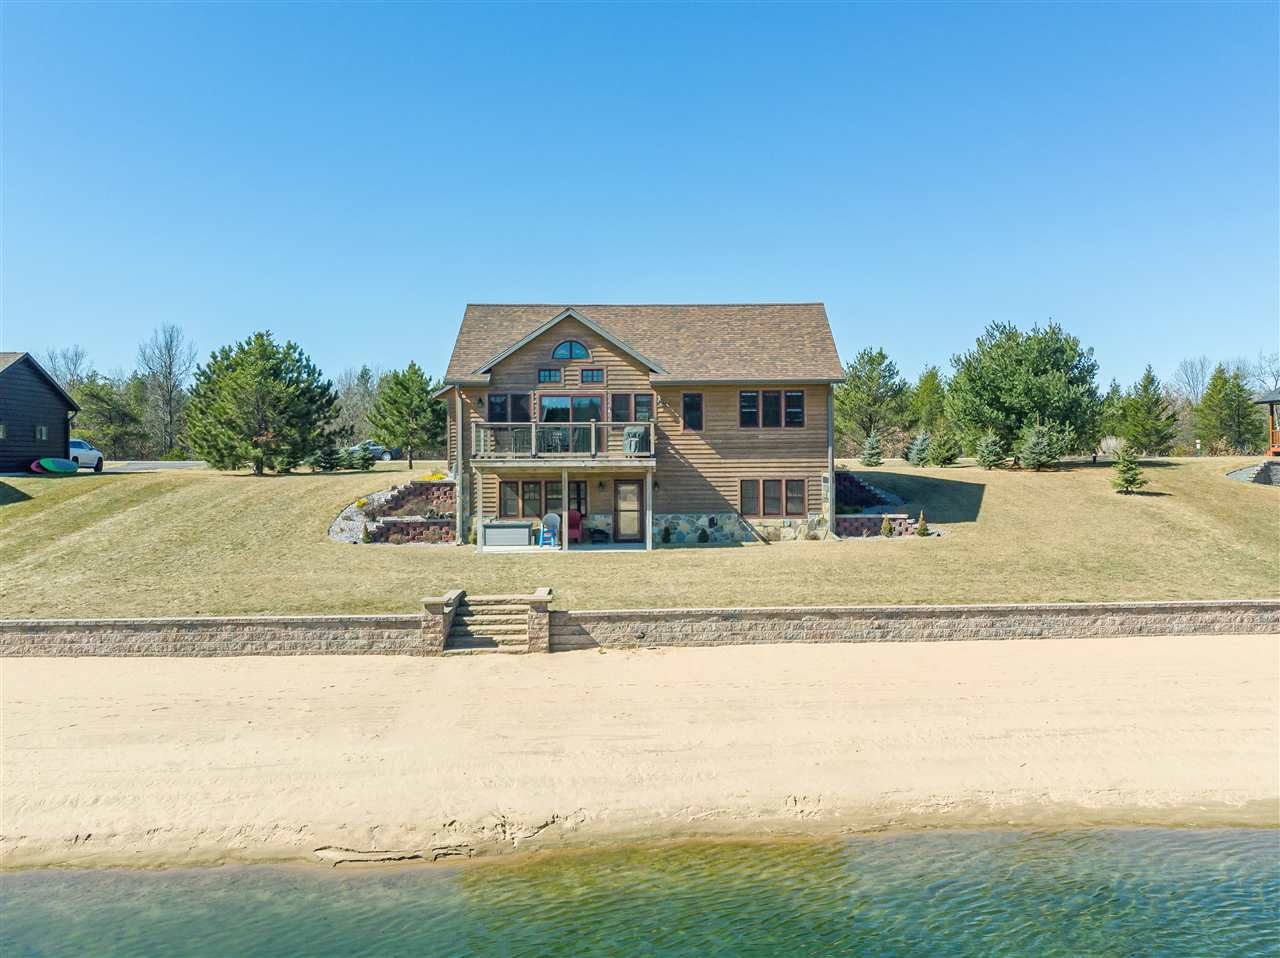 N7634 N Stone Gate Dr, New Lisbon, WI 53950 - MLS#: 1904466